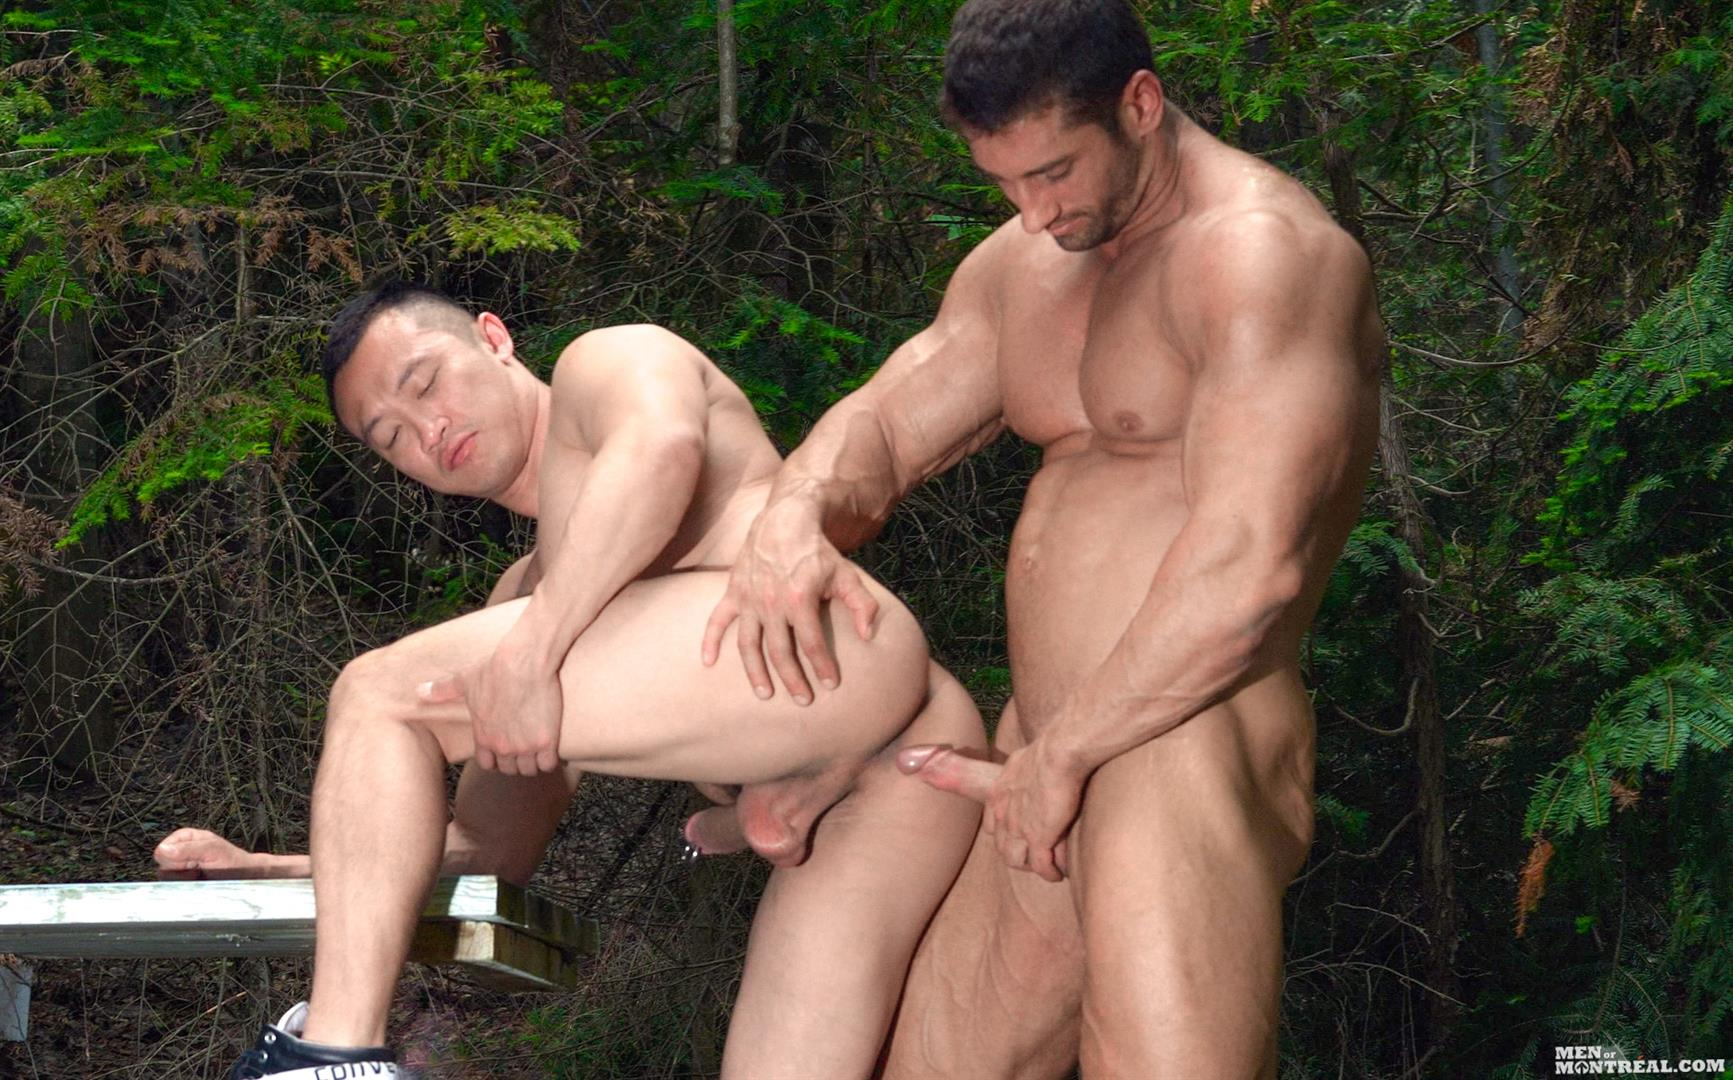 Men of Montreal Archer Quan and Christian Power Asian Muscle Man Gets Fucked In The Ass By Hunk Big Asian Cock Amateur Gay Porn 13 Canadian Lumberjack Fucks A Muscle Asian Hunk In The Ass